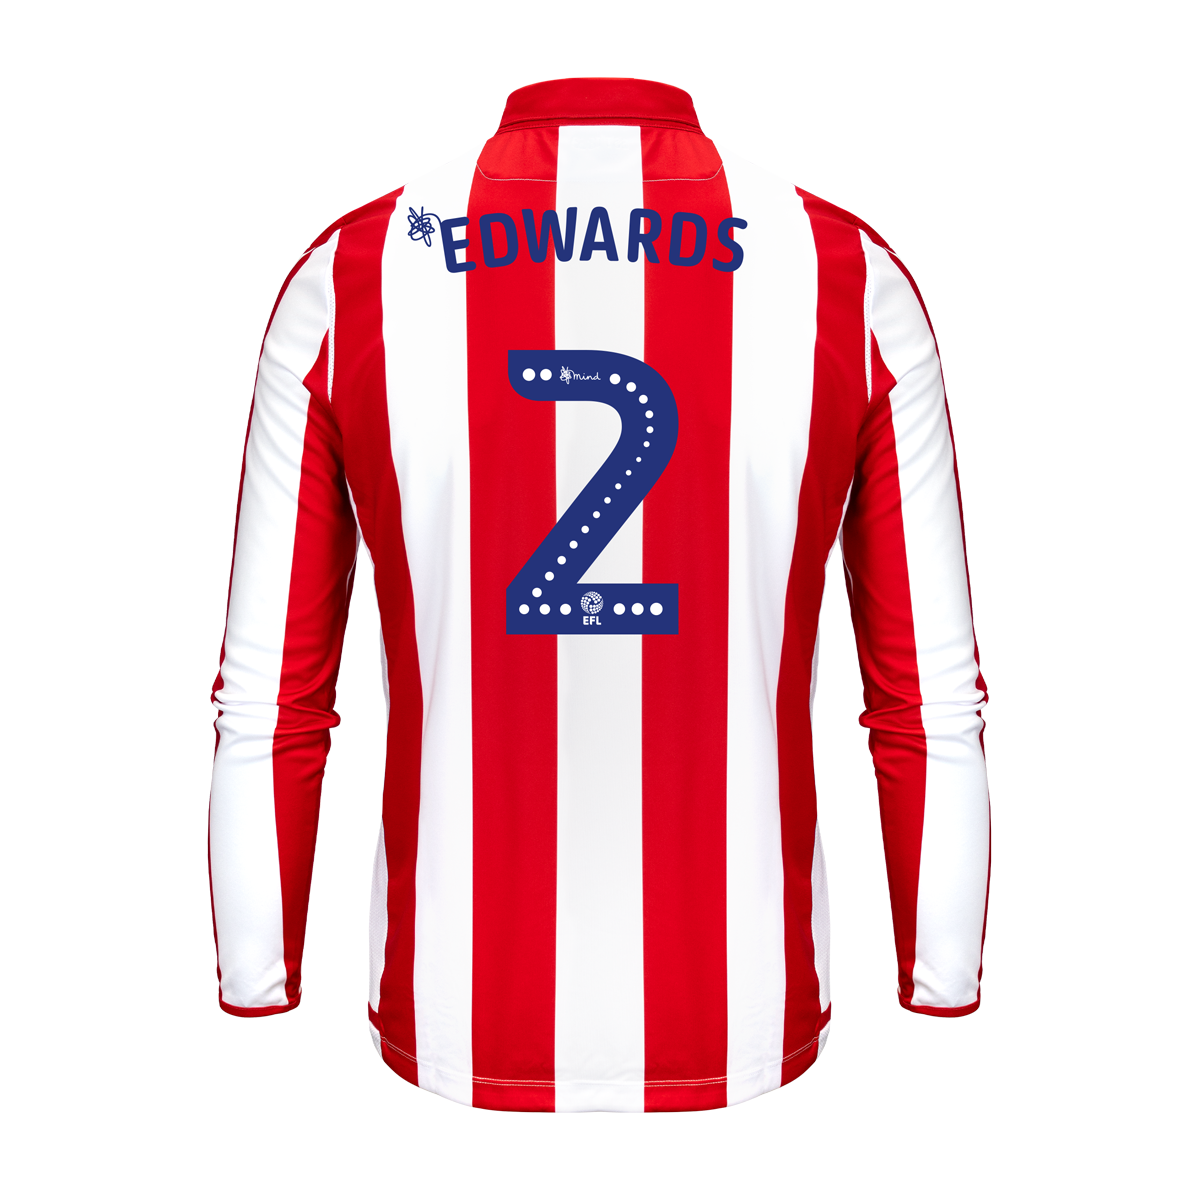 2019/20 Adult Home LS Shirt - Edwards